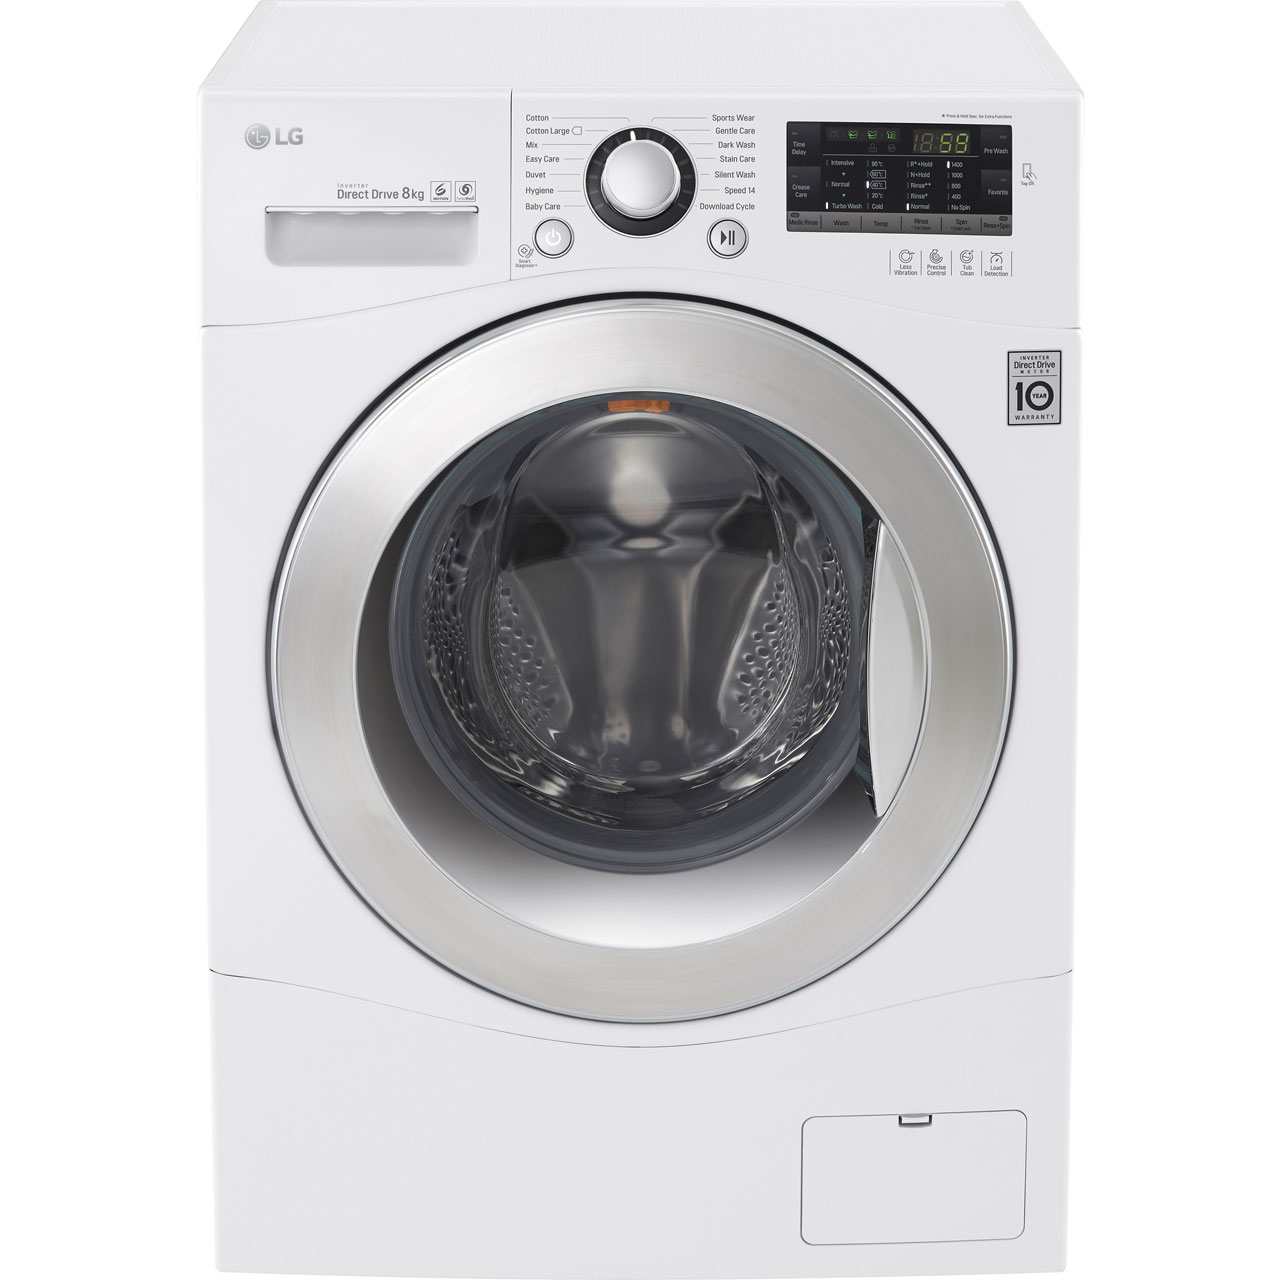 LG FH4A8TDN2 8Kg Washing Machine with 1400 rpm - White